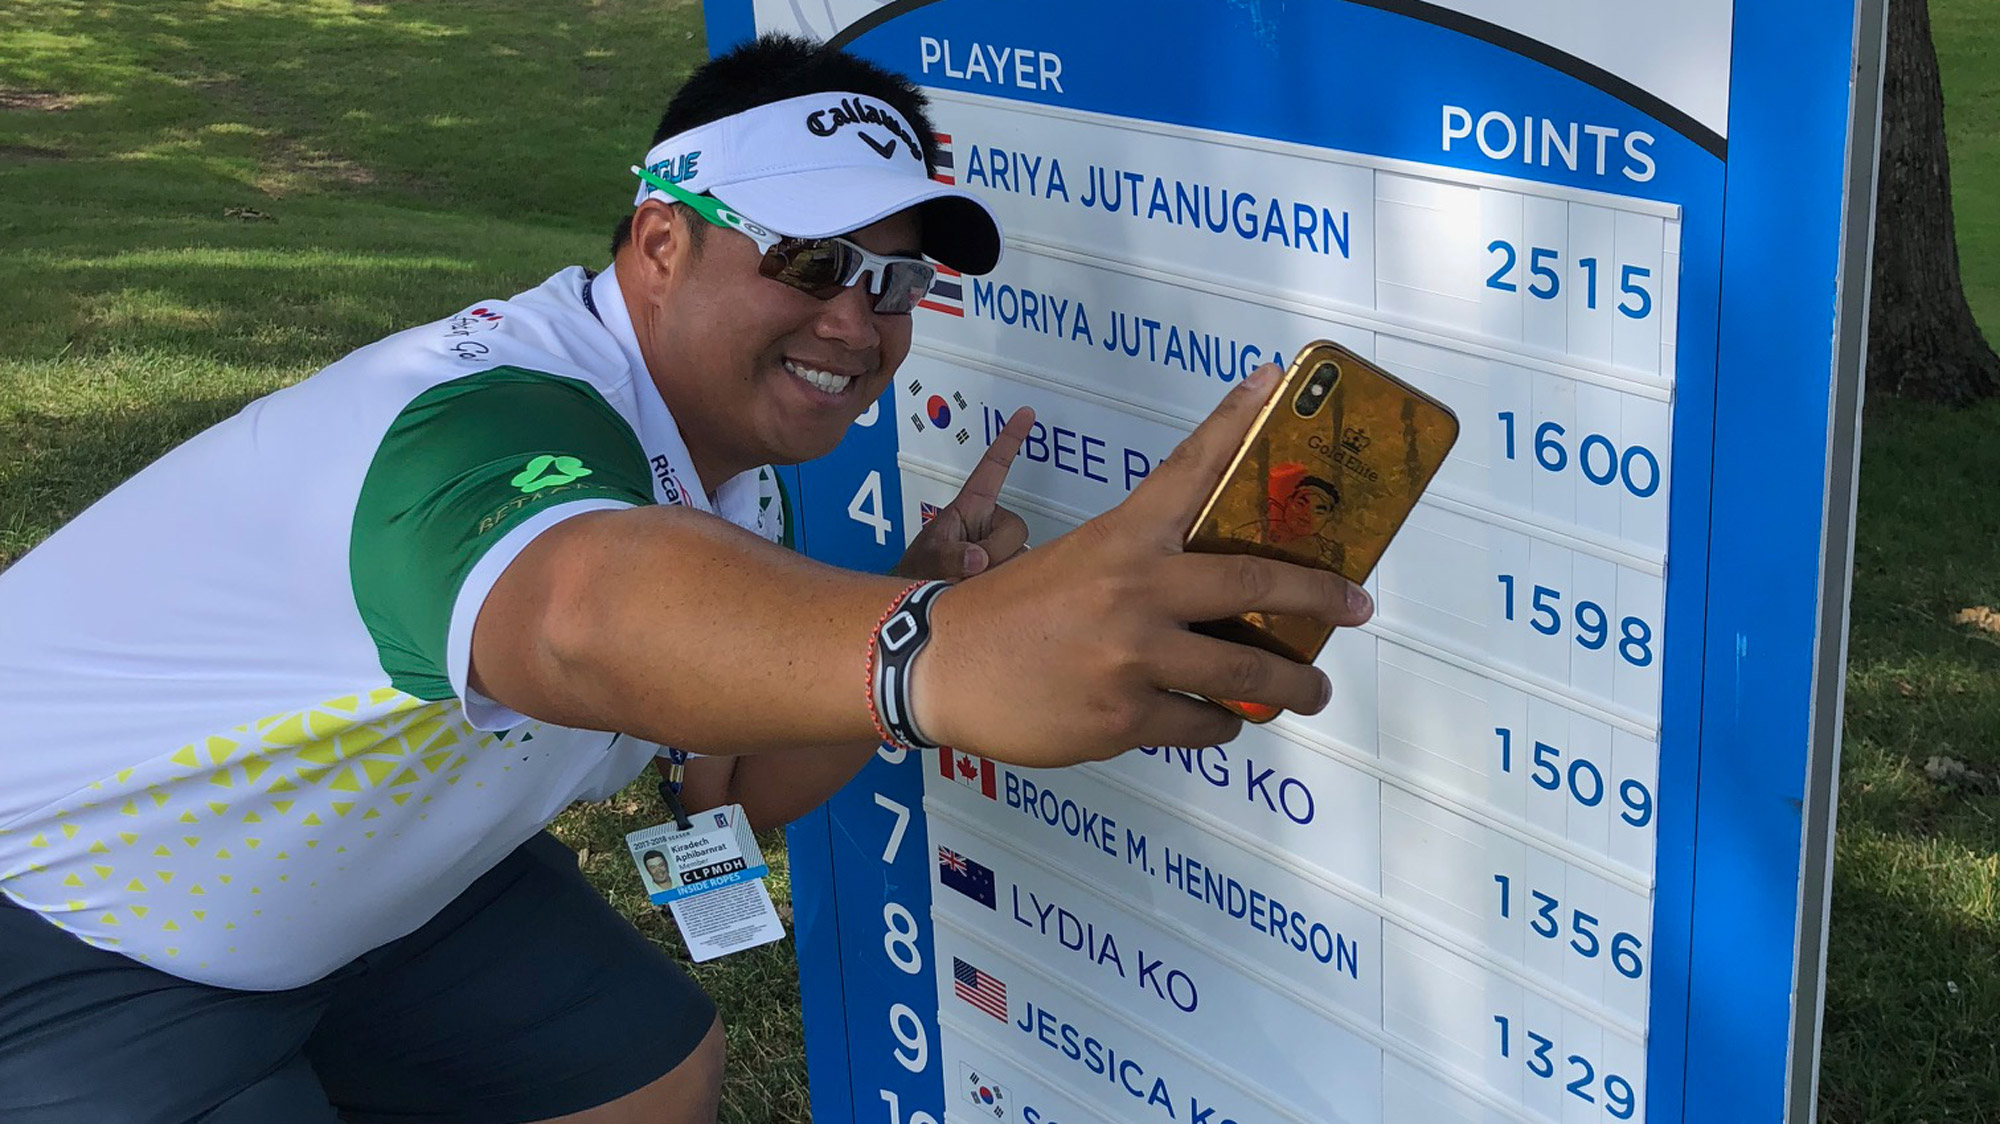 PGA TOUR star Kiradech Aphibarnrat took in Round One of the Walmart NW Arkansas Championship